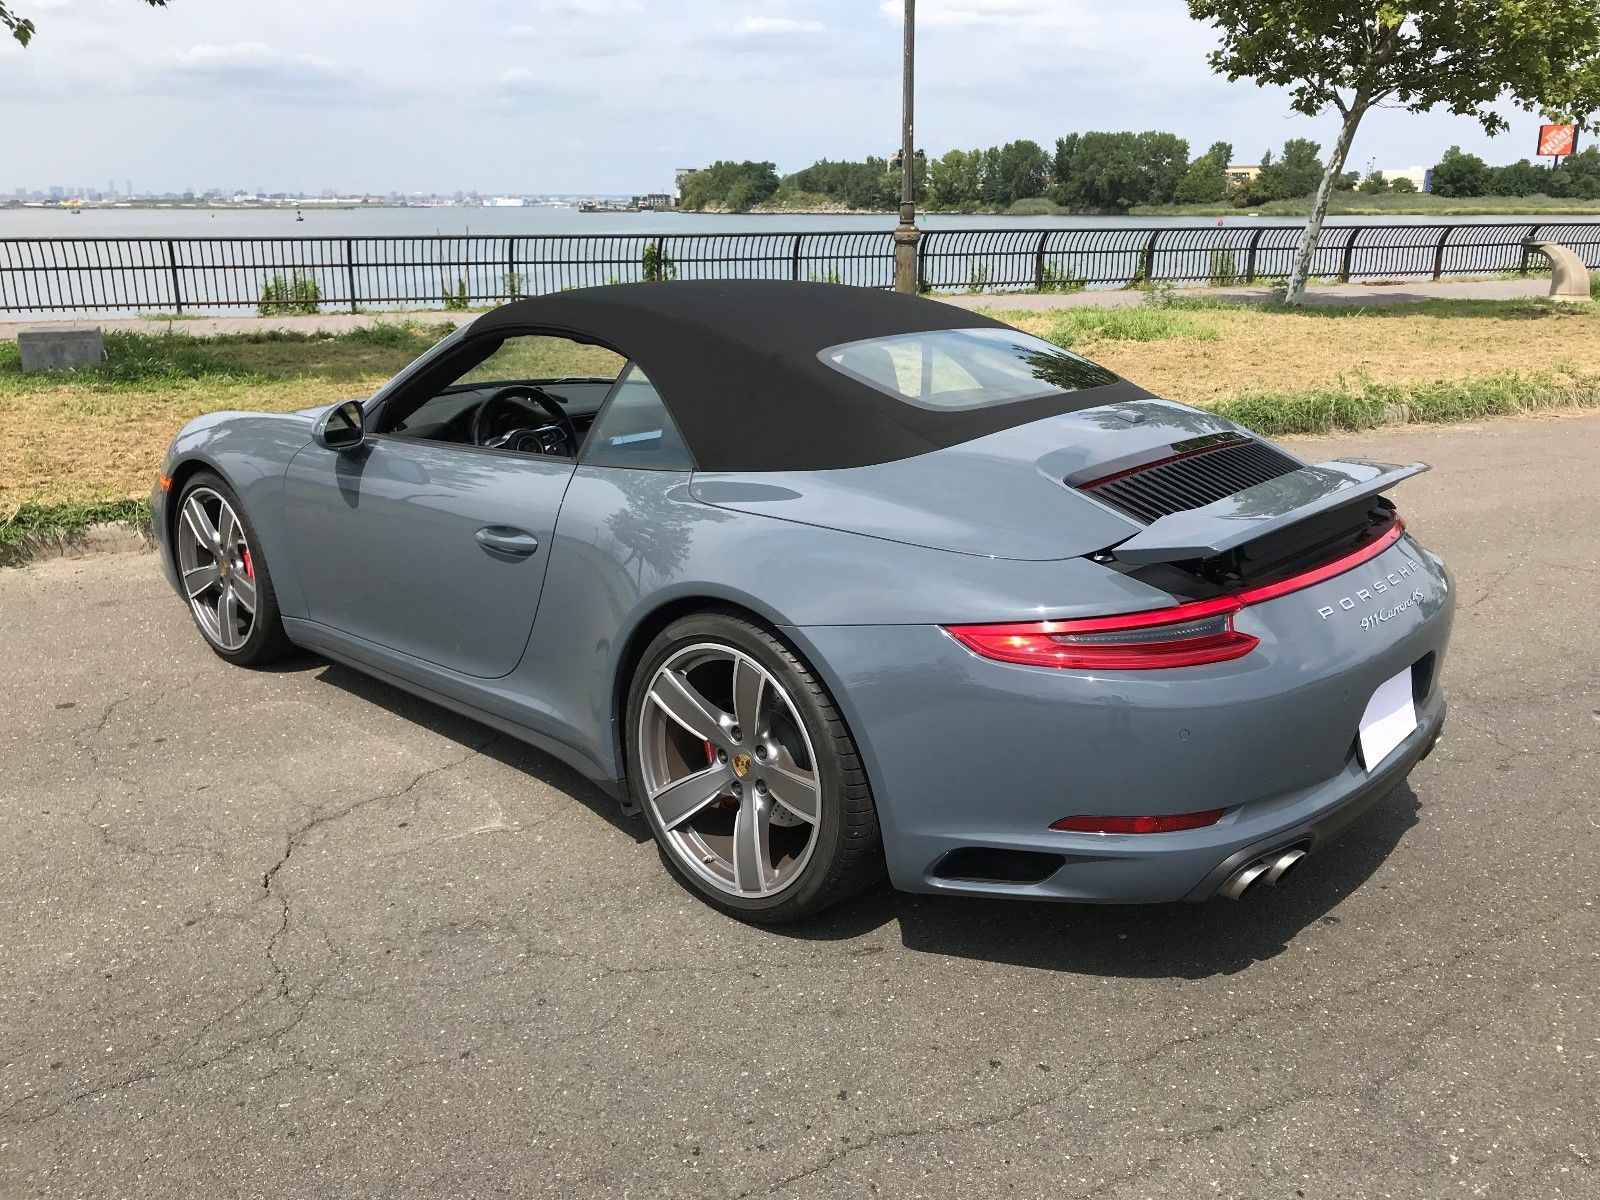 Awesome 2017 Porsche 911 Carrera 4s Twin Turbo Porsche 911